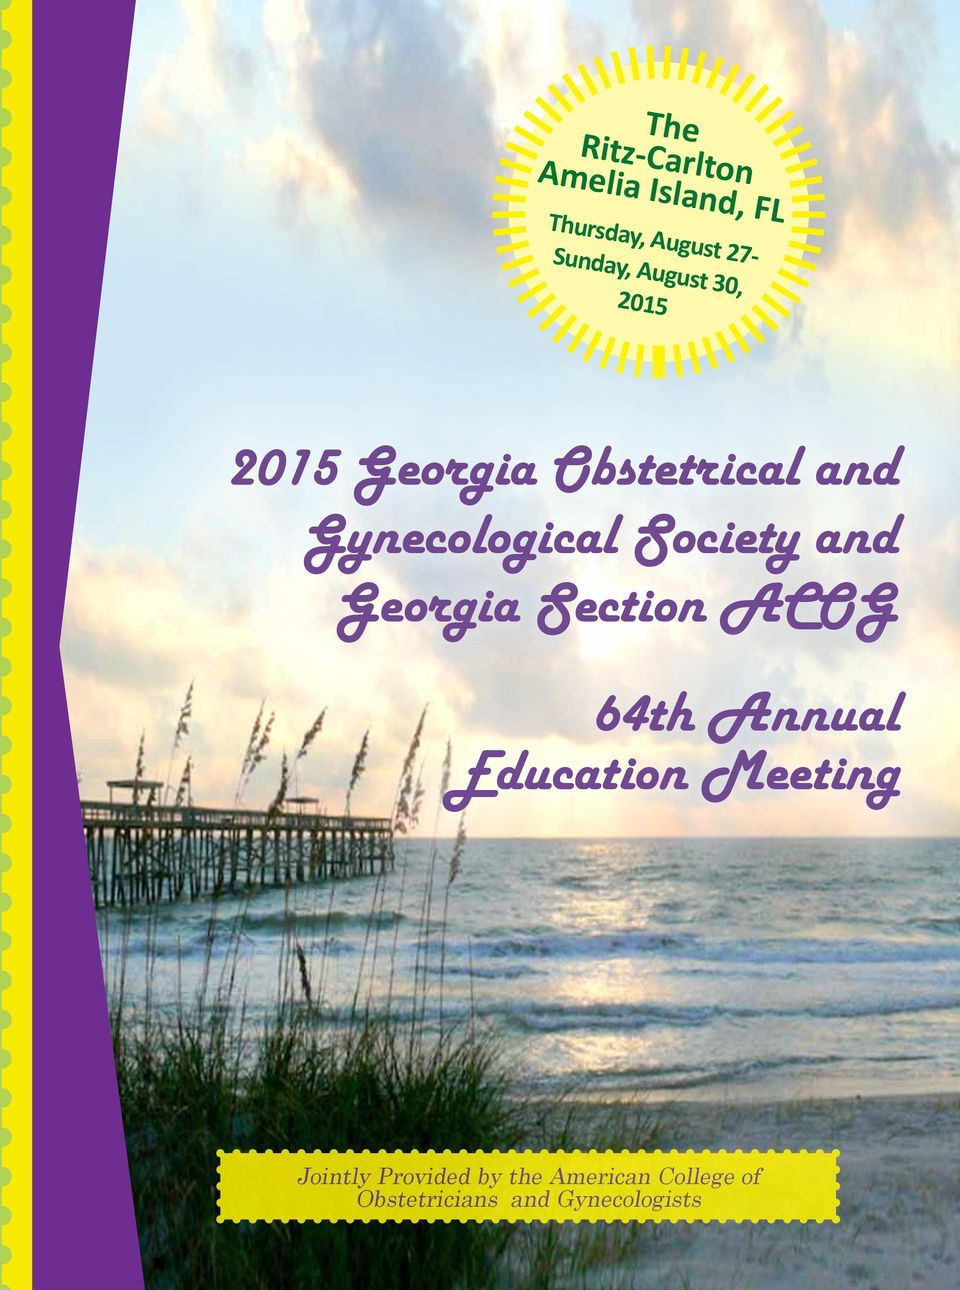 Society and Georgia Section ACOG 64th Annual Education Meeting